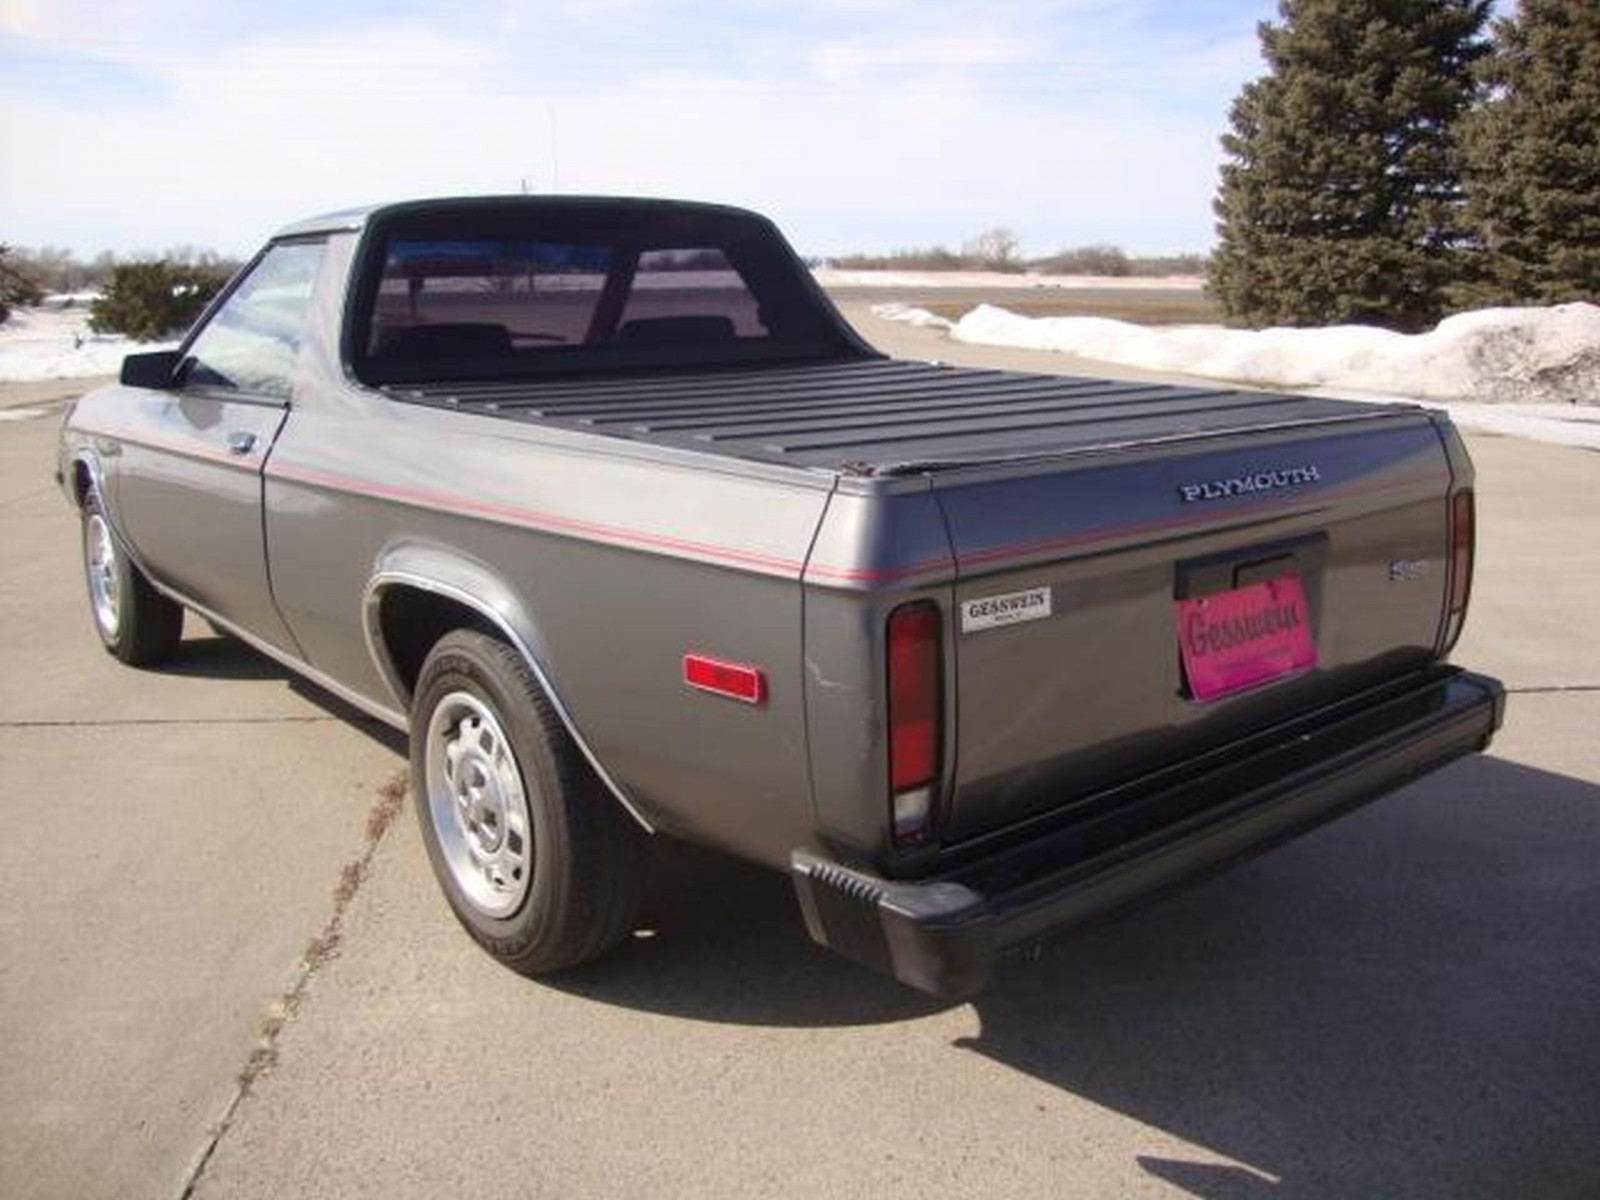 1983 Plymouth Scamp Pickup - Image 18